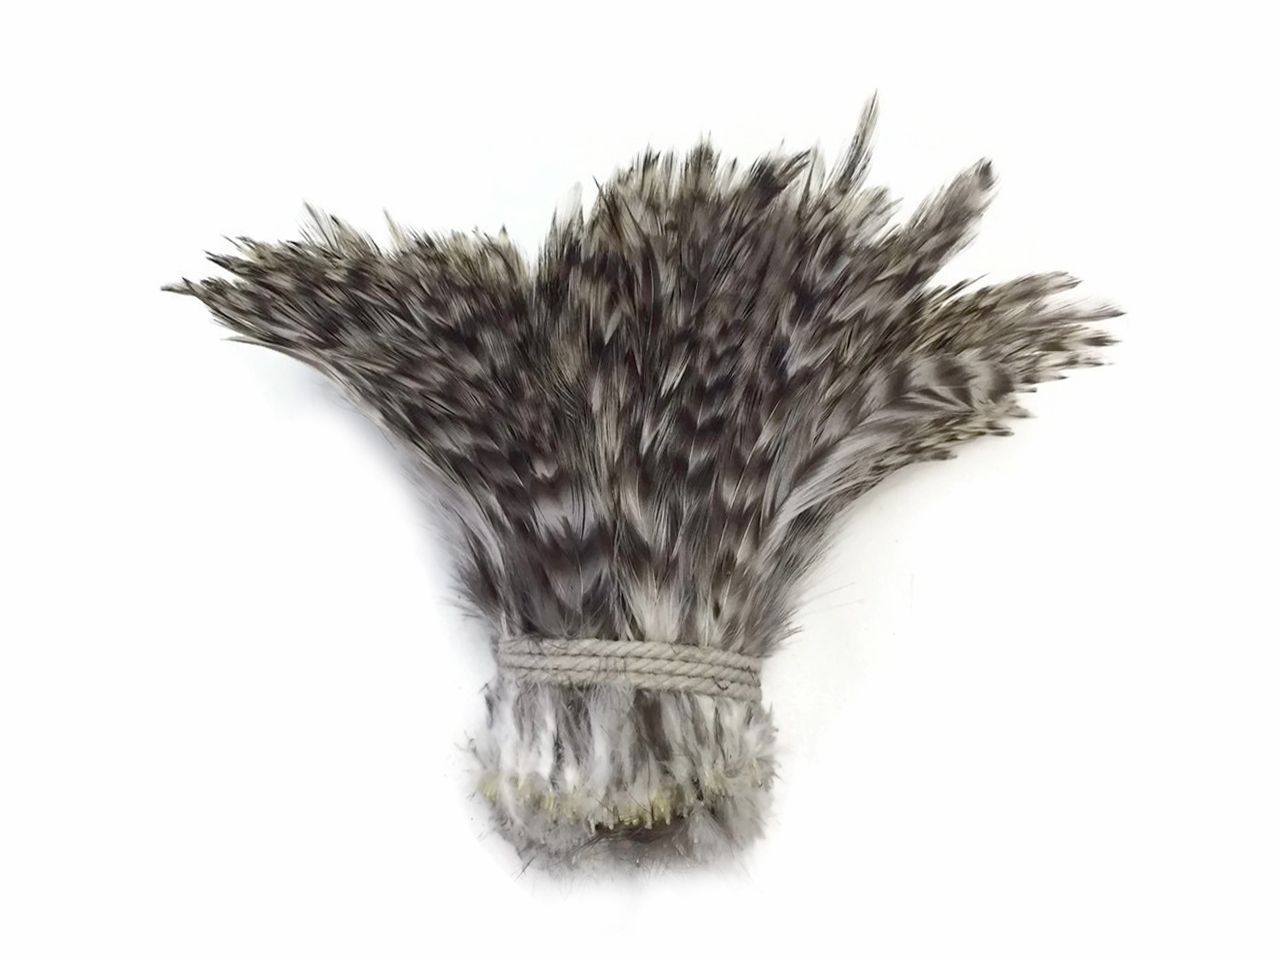 4 Inch Strip GREY CHINCHILLA Strung Rooster Neck Hackle Feathers